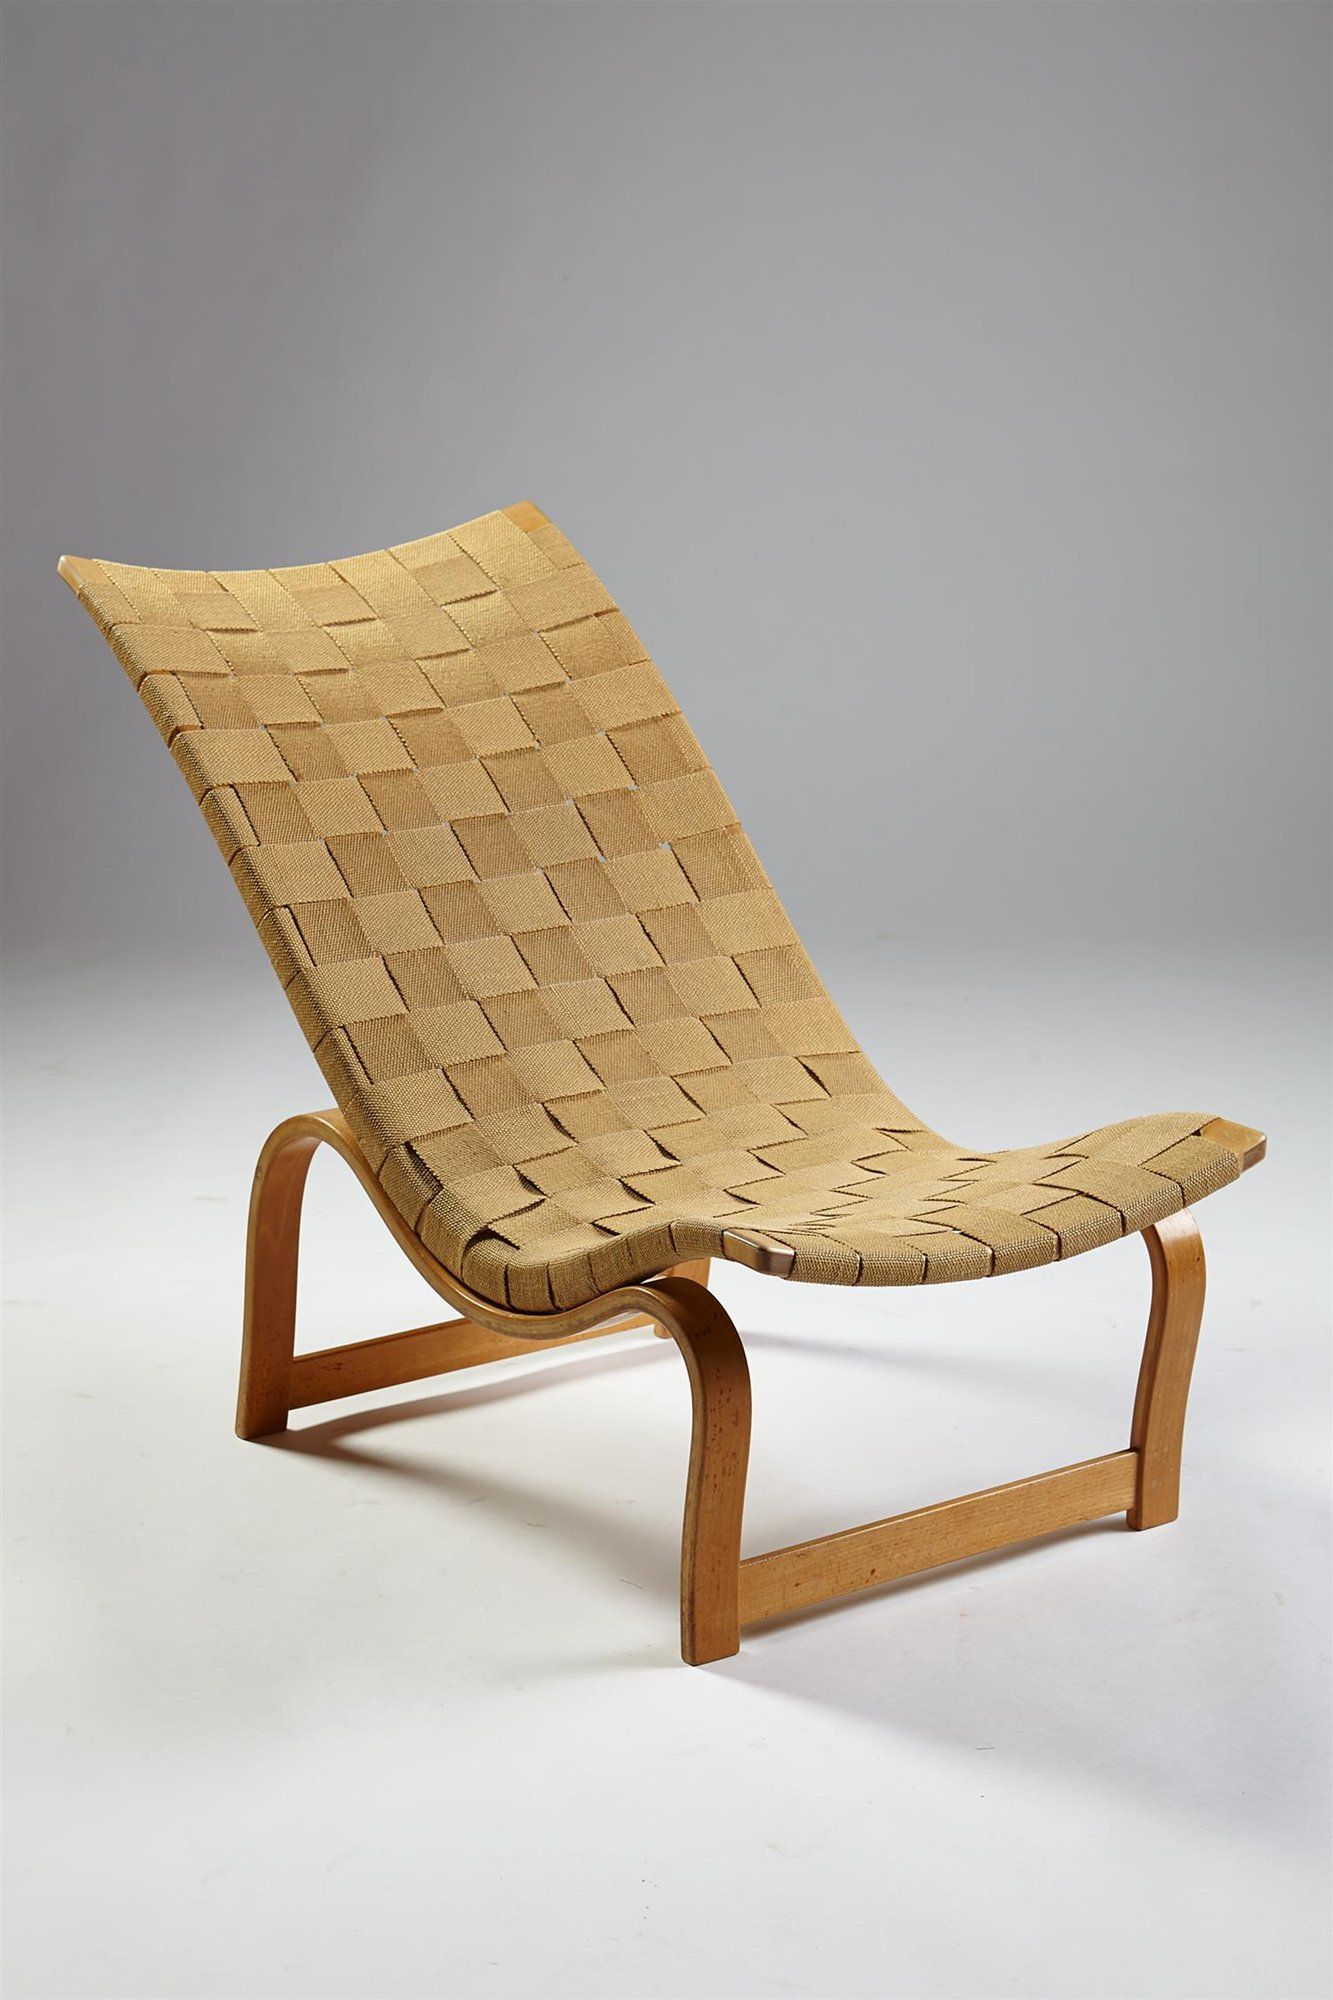 bruno mathsson for karl mathsson birch hemp webbing easy chair